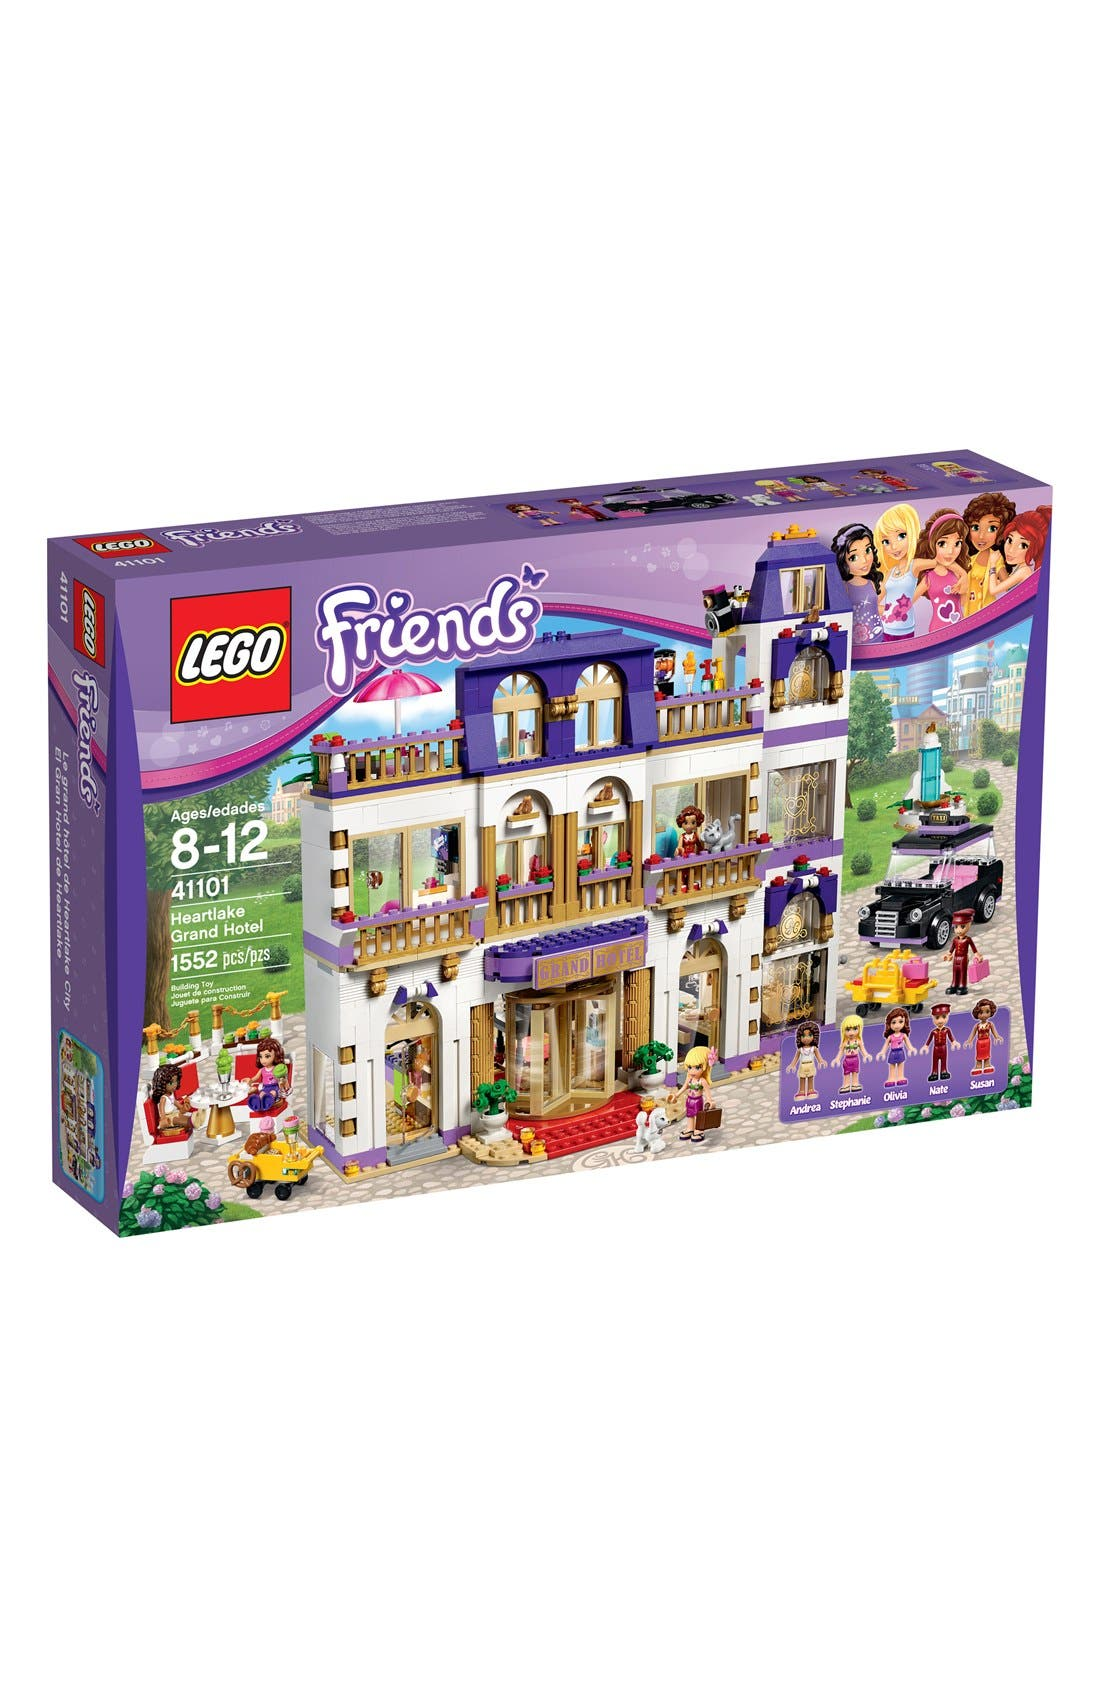 LEGO® Friends Heartlake Grand Hotel - 41101